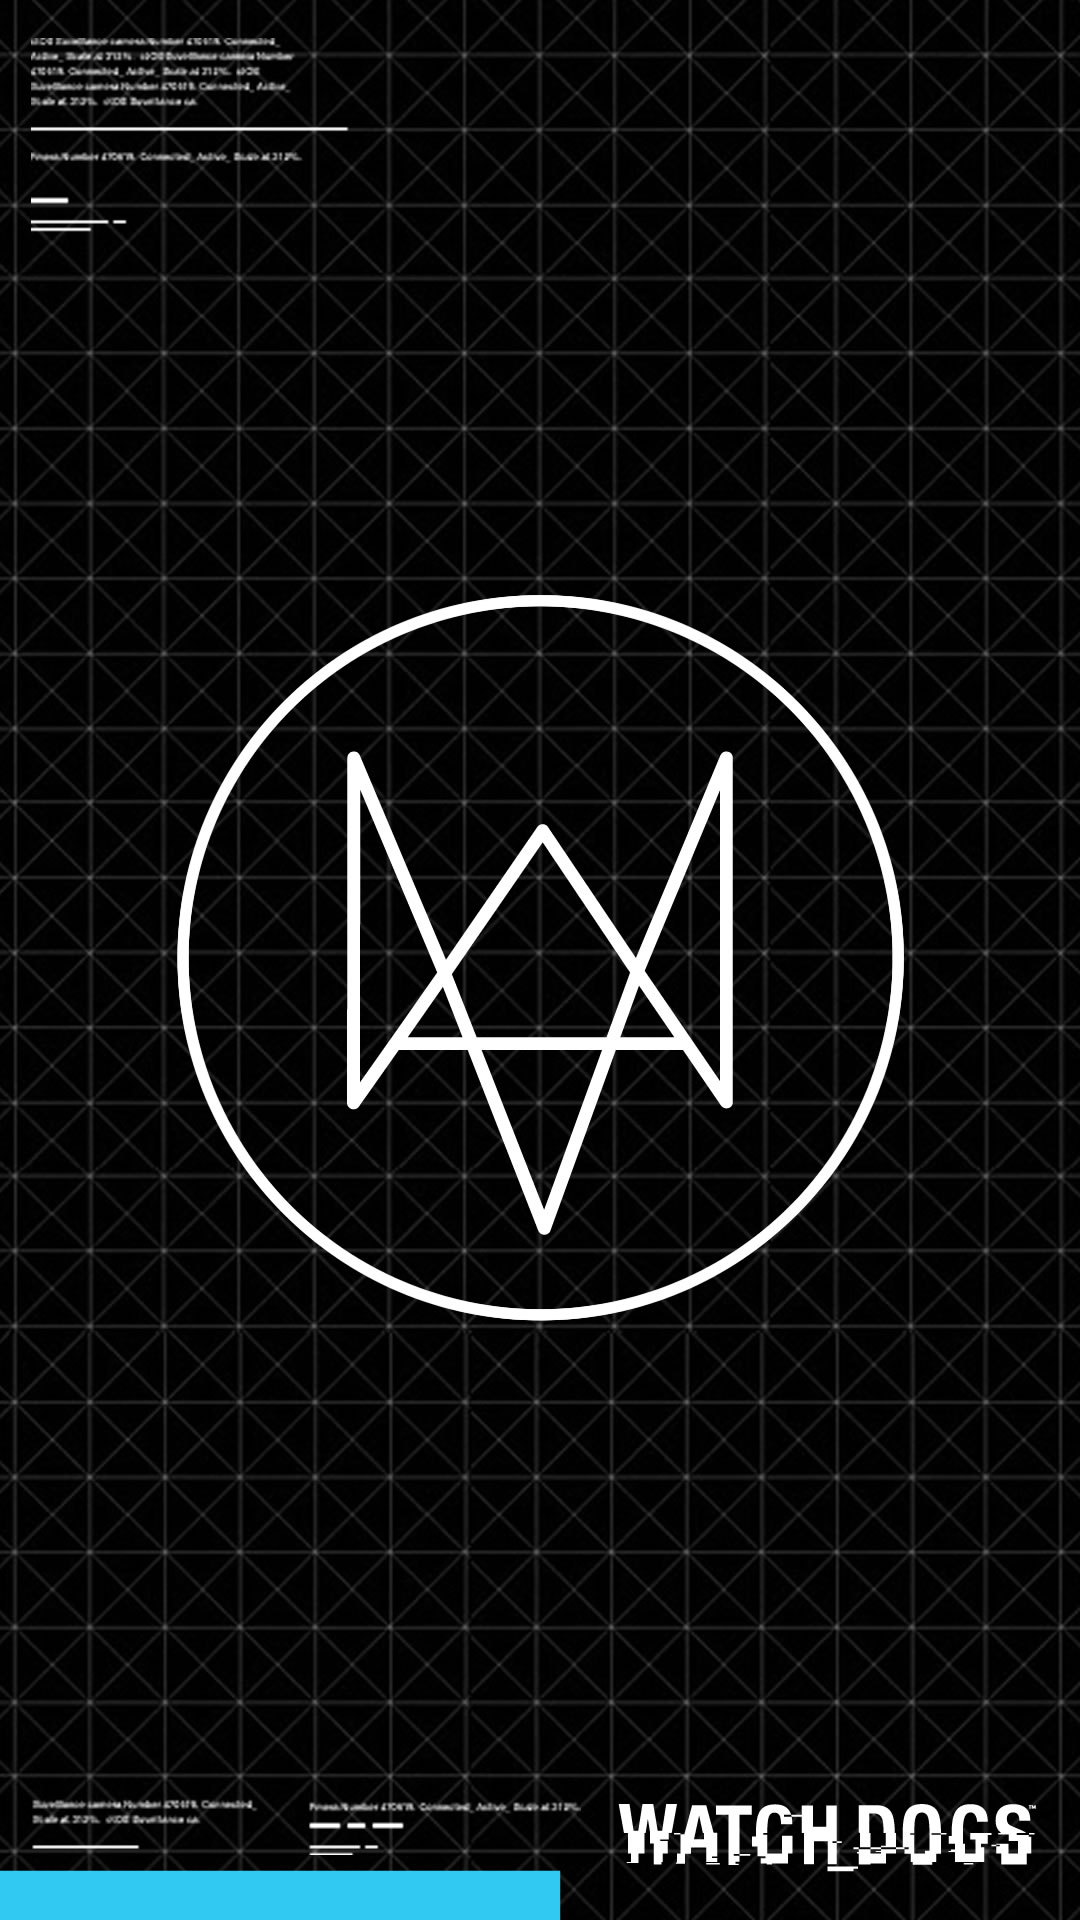 Wallpapers For > Watch Dogs Iphone Wallpaper